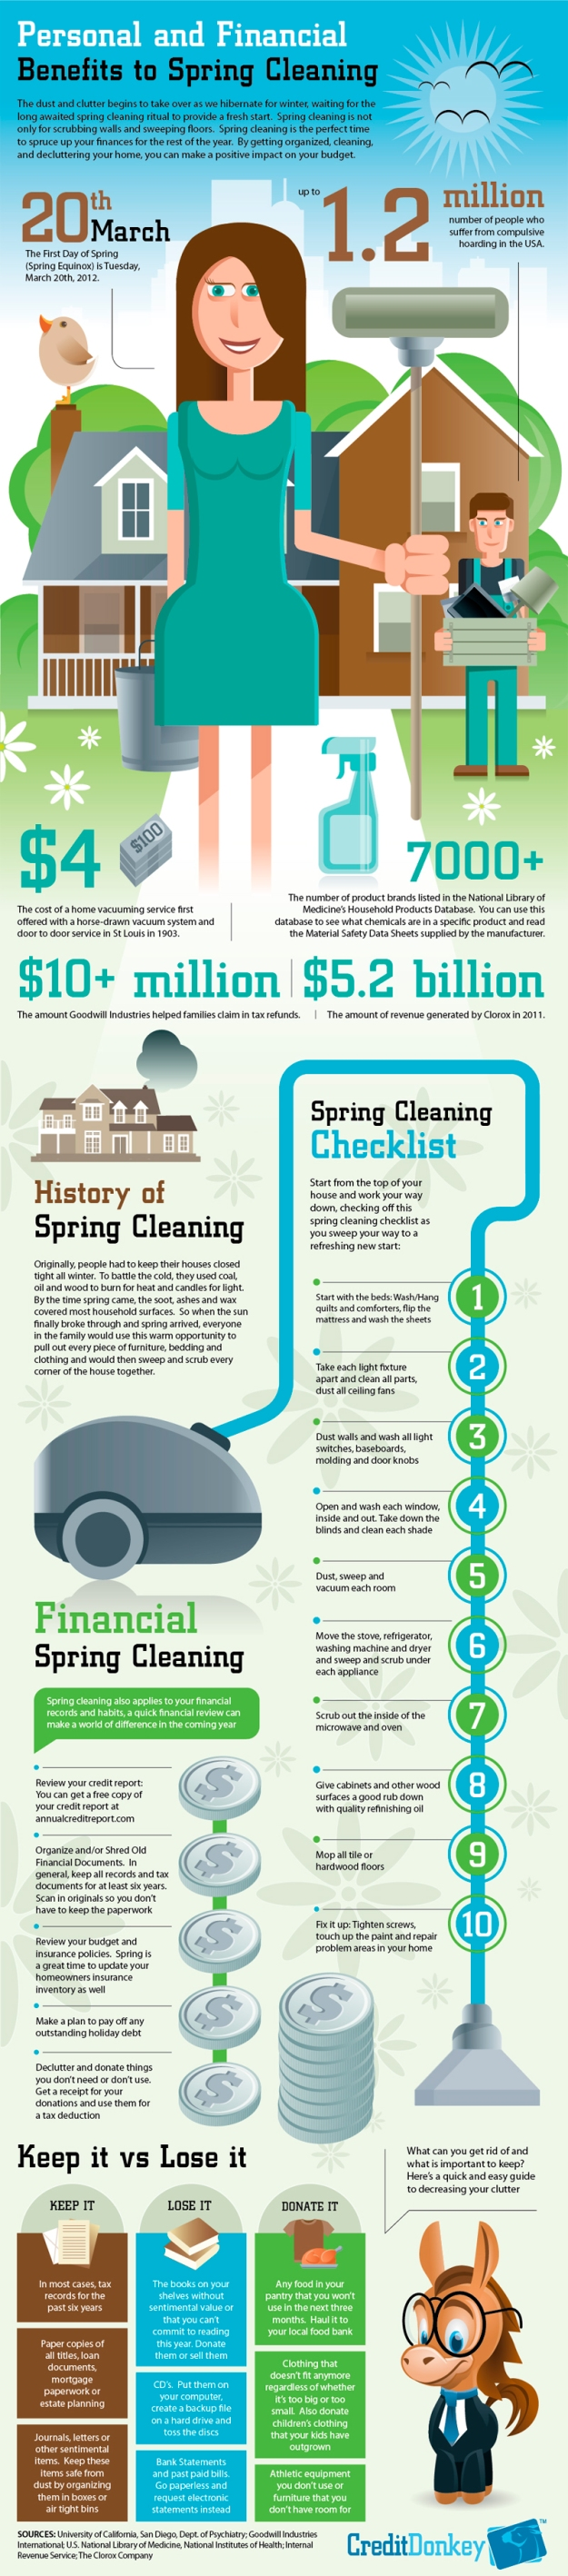 Personal and Financial Benefits to Spring Cleaning